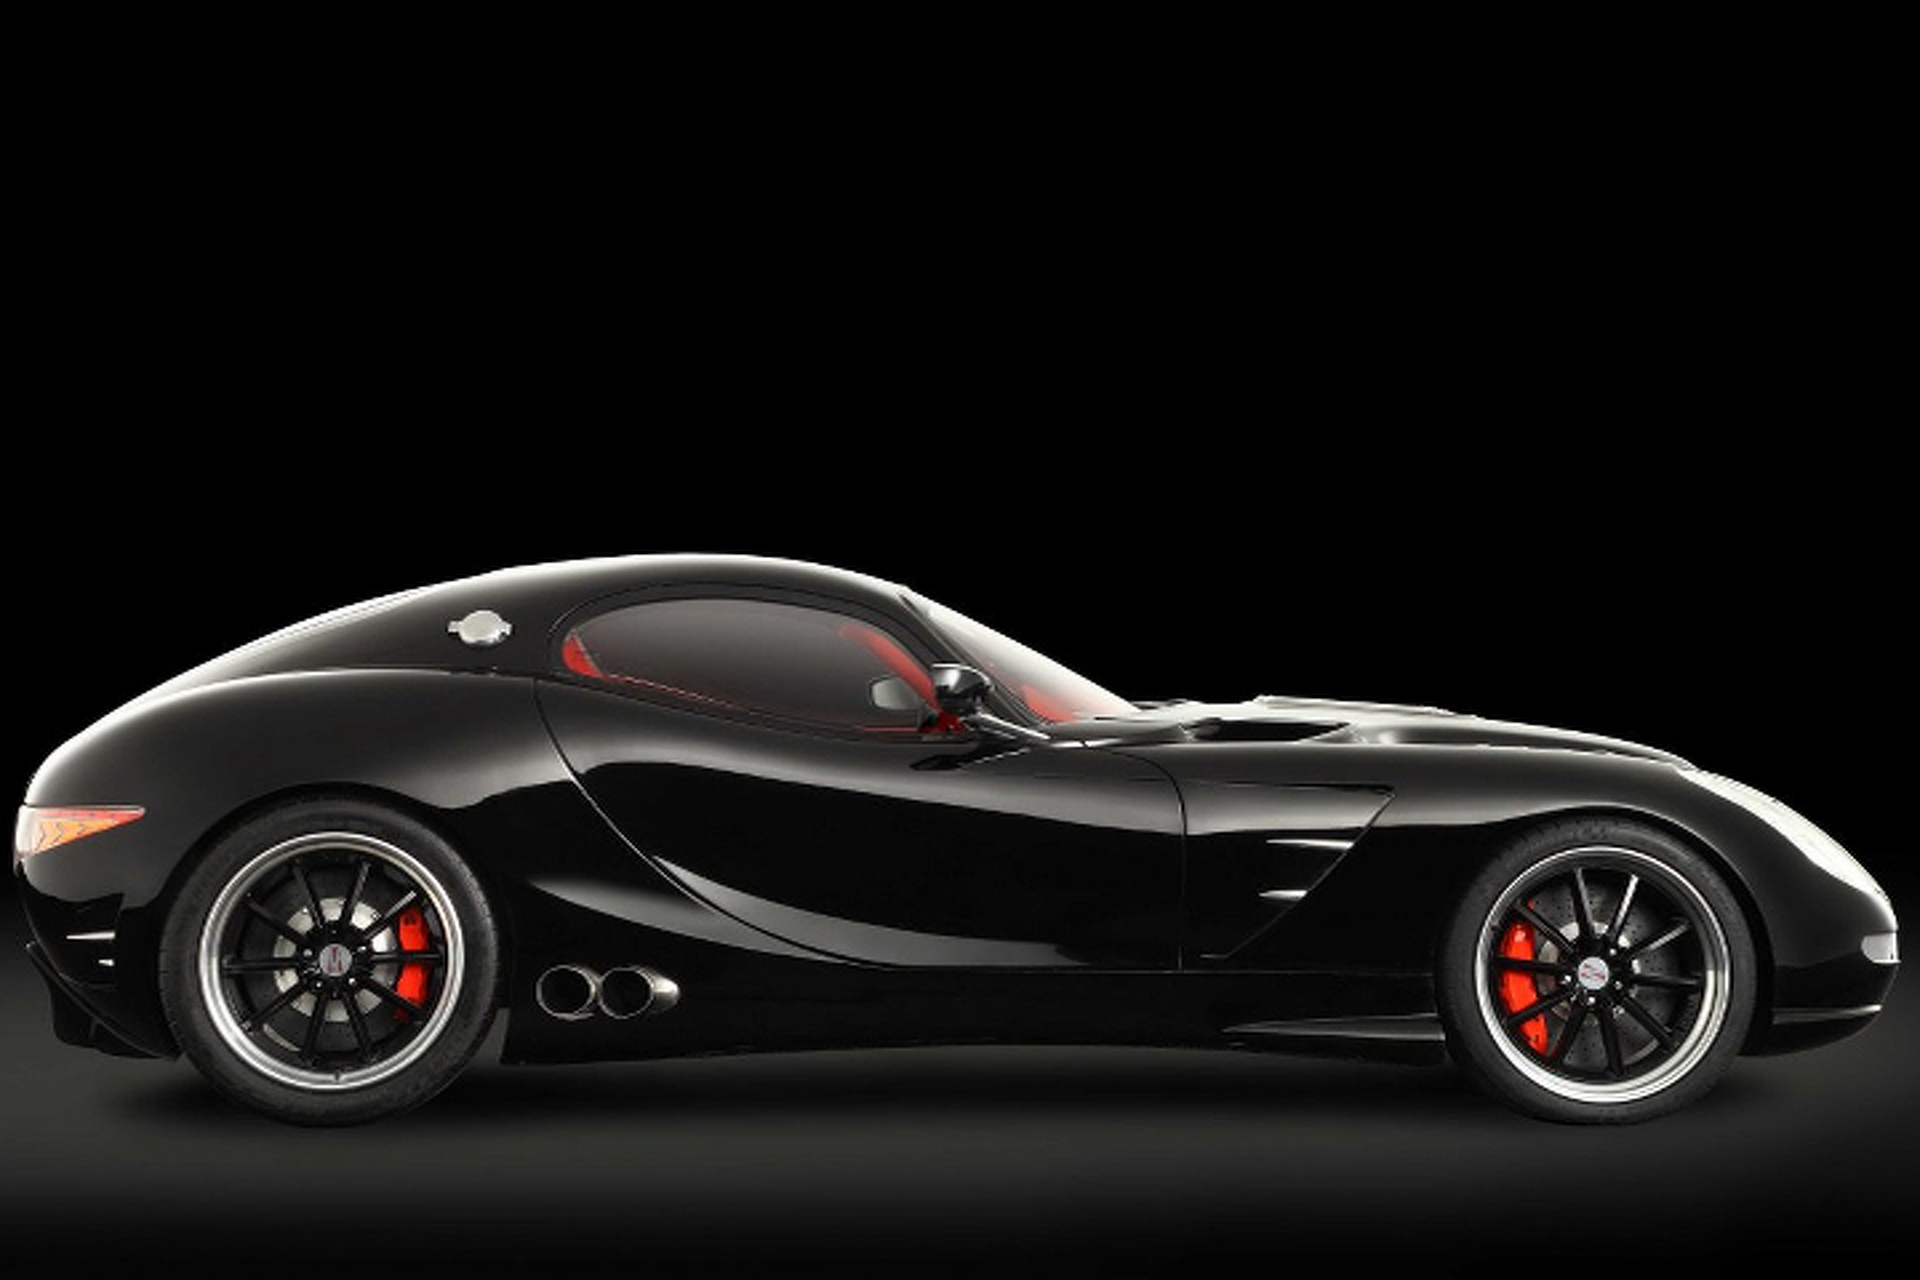 Diesel supercar has 190 mph top speed 2000 miles per tank sciox Images